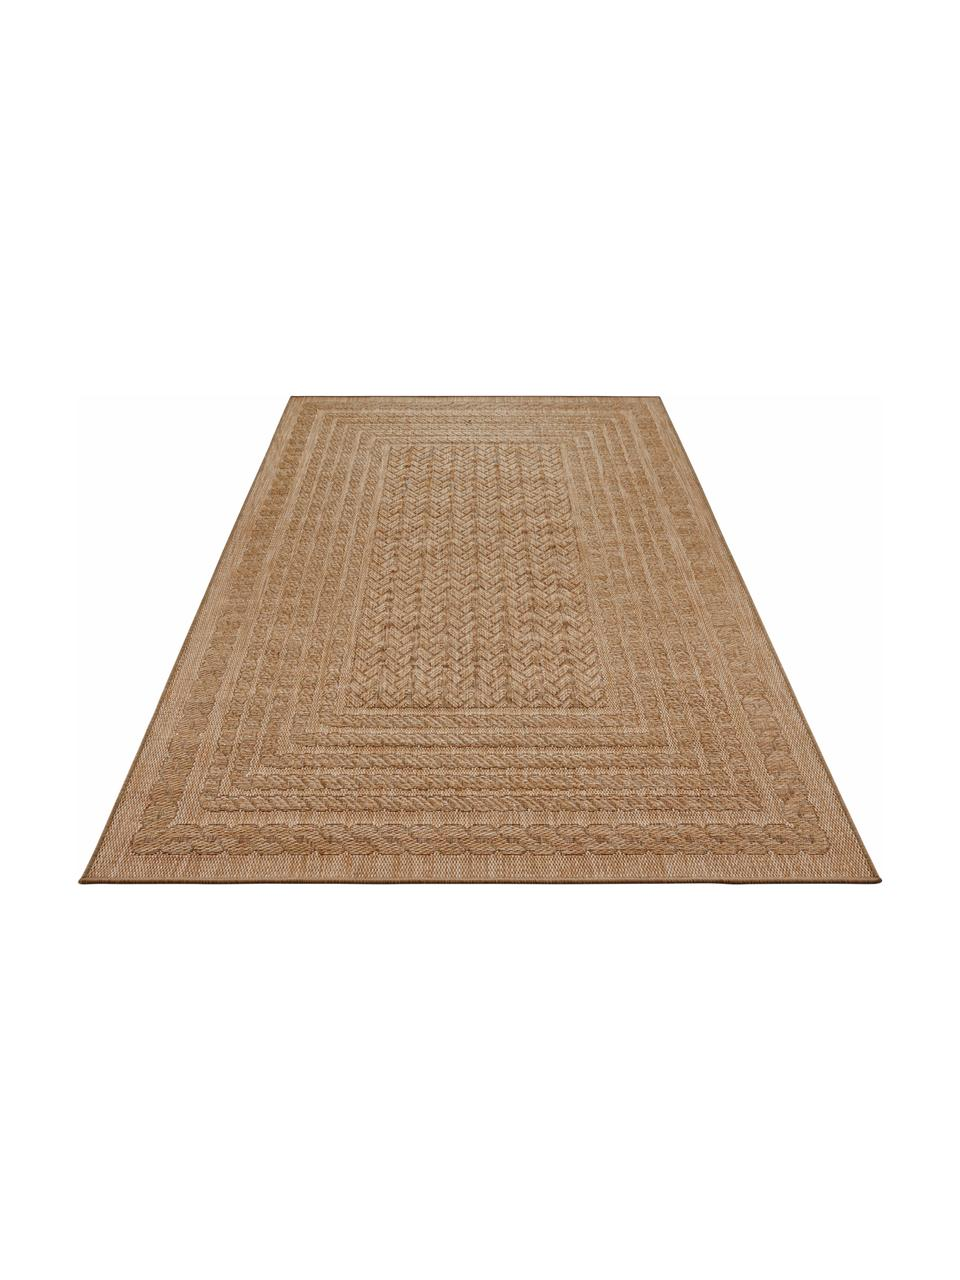 In- &  outdoor vloerkleed Limonero in juten look, 100% polypropyleen, Beige, bruin, B 200 x L 290 cm (maat L)